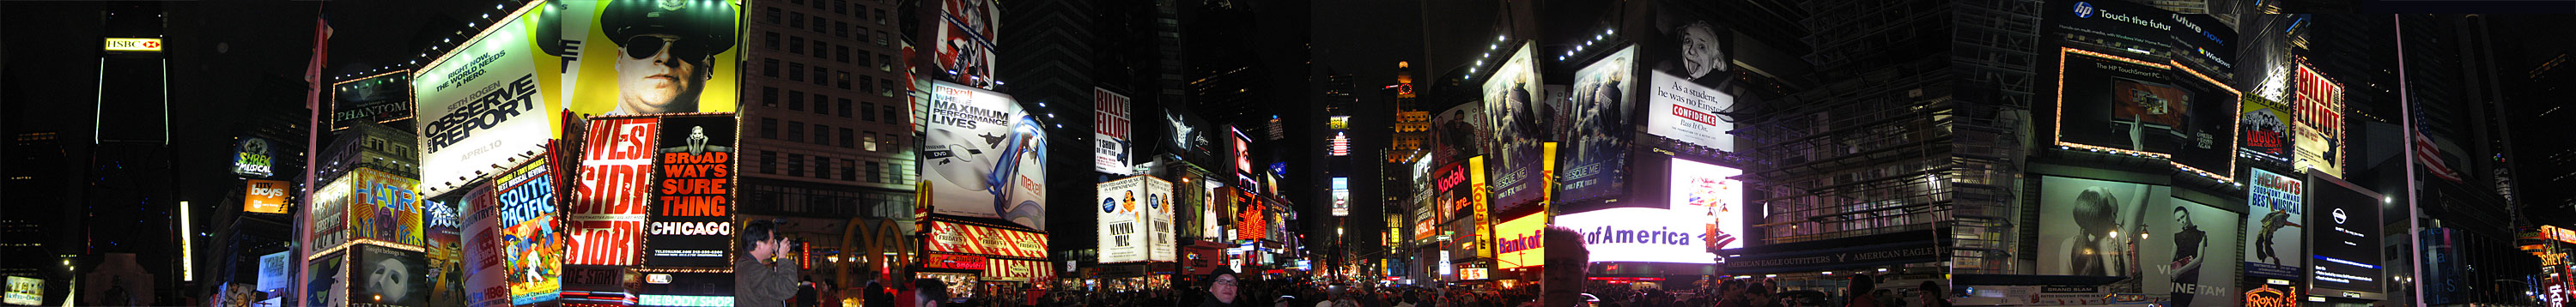 earth_hour_tsq_092